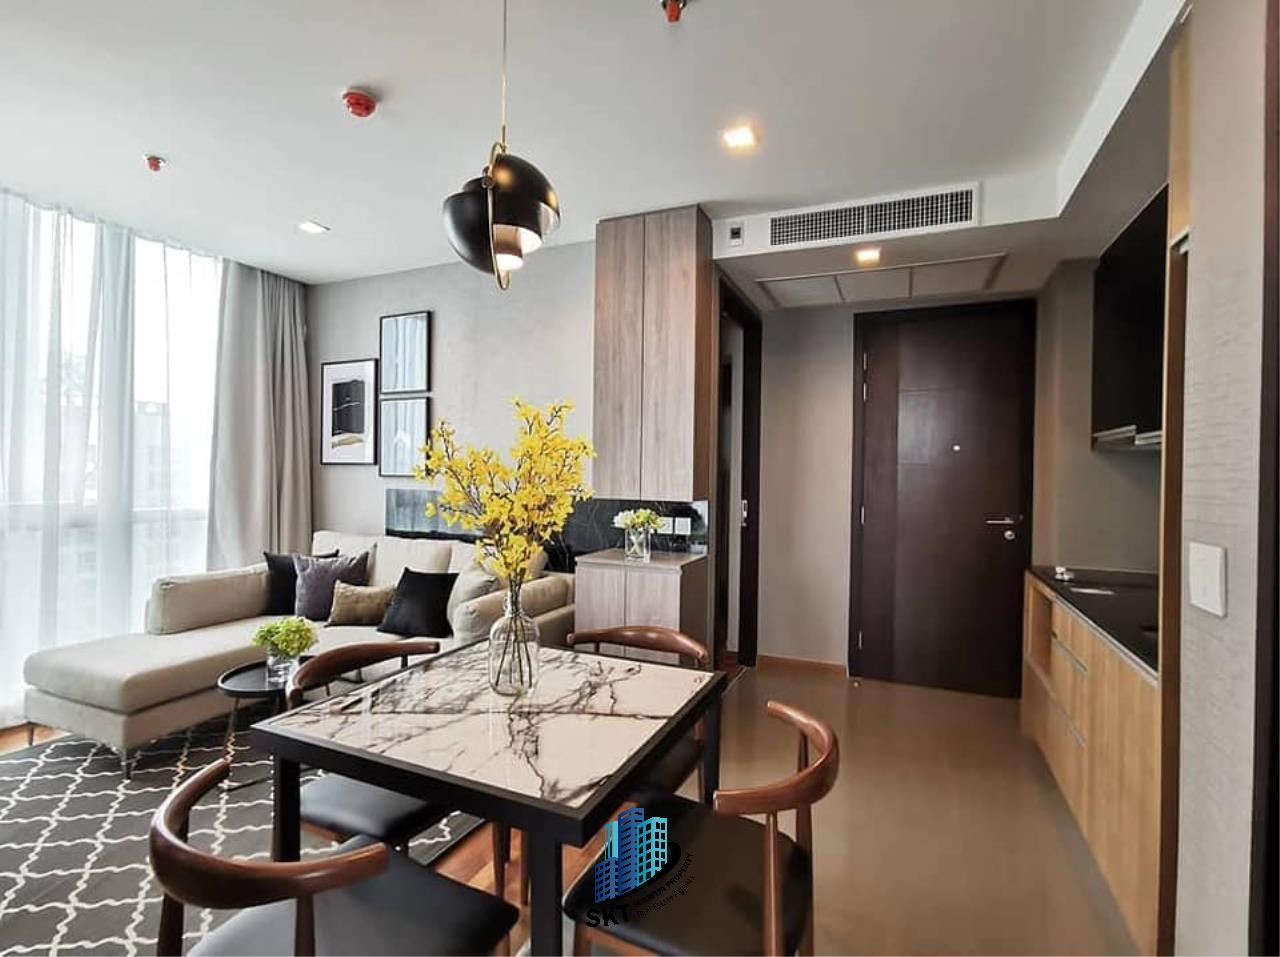 Sukritta Property Agency's WISH SIGNATURE MIDTOWN SIAM CONDO NEAR BTS RATCHATHEWI 10